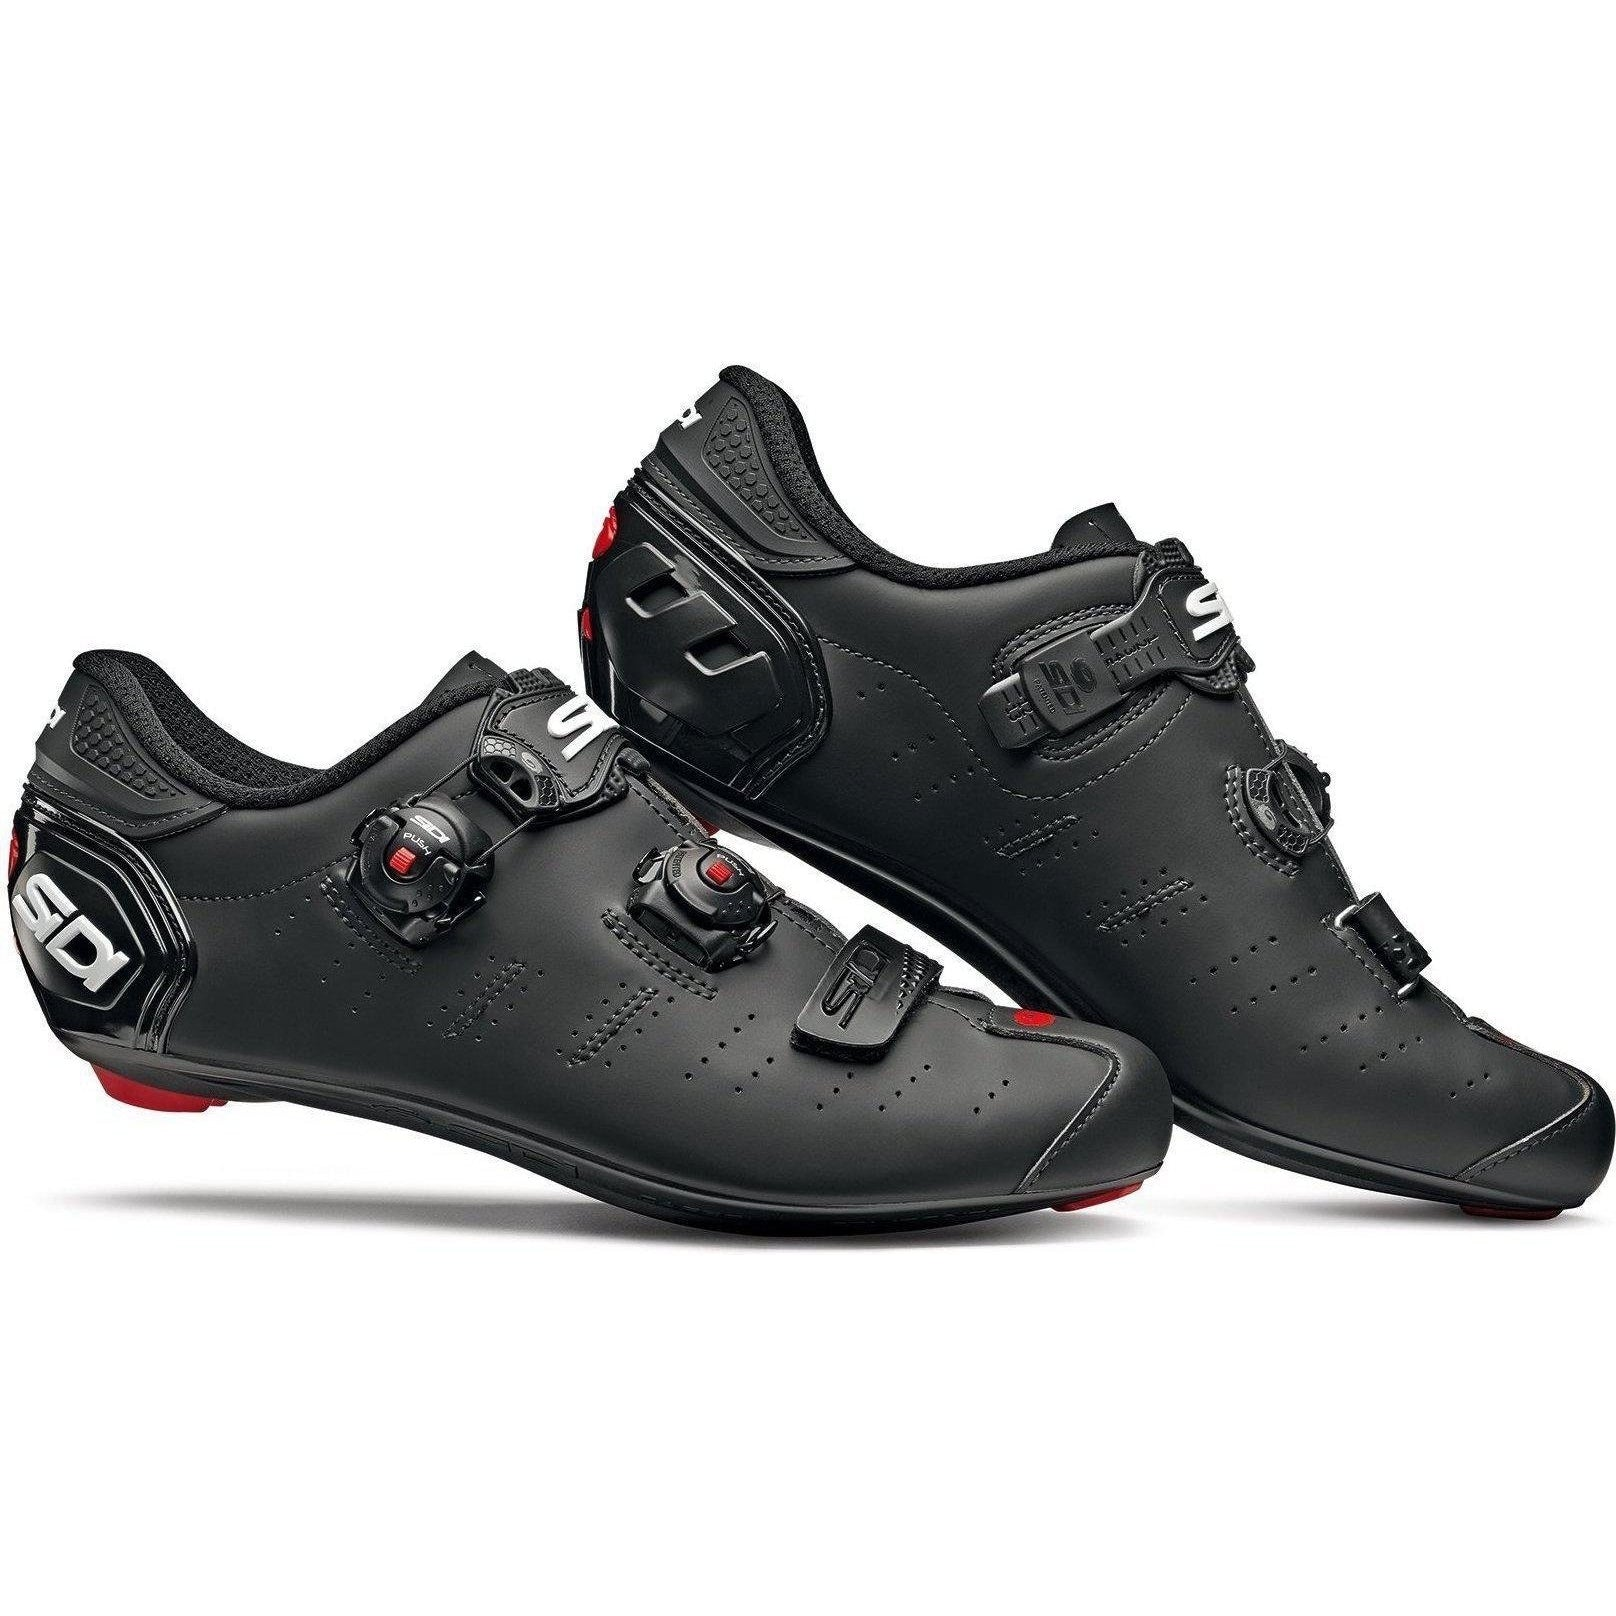 Sidi-Sidi Ergo 5 Road Shoes - Matt-Matt Black-38-SIERGO5MATNEOP38-saddleback-elite-performance-cycling